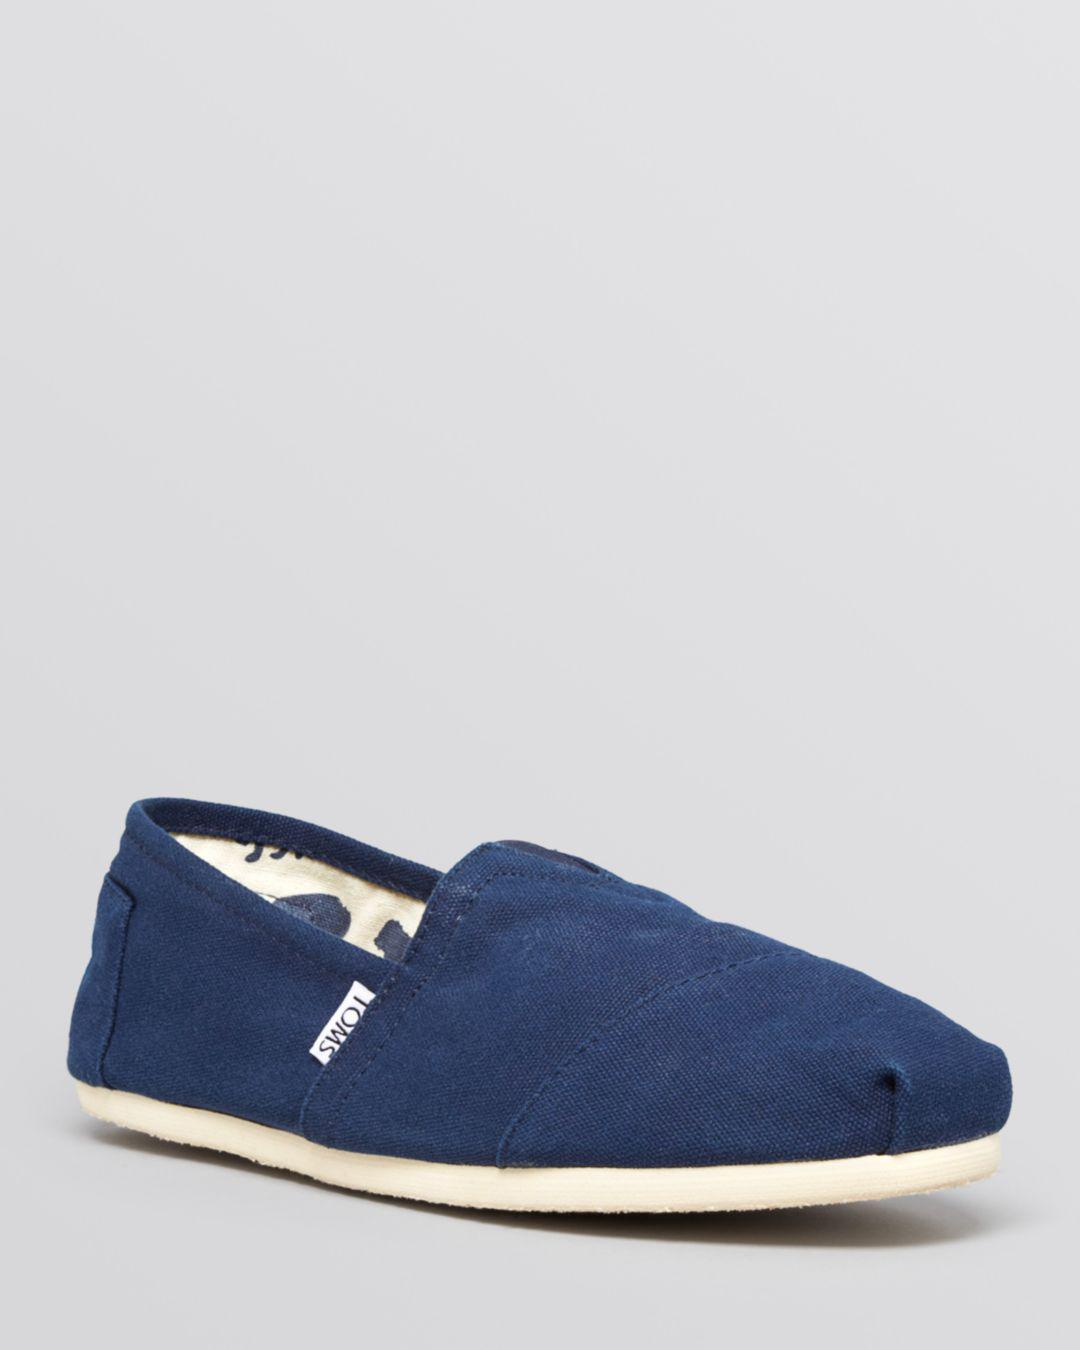 2793c043247 TOMS - Blue Men s Alpargata Classic Canvas Slip Ons for Men - Lyst. View  fullscreen